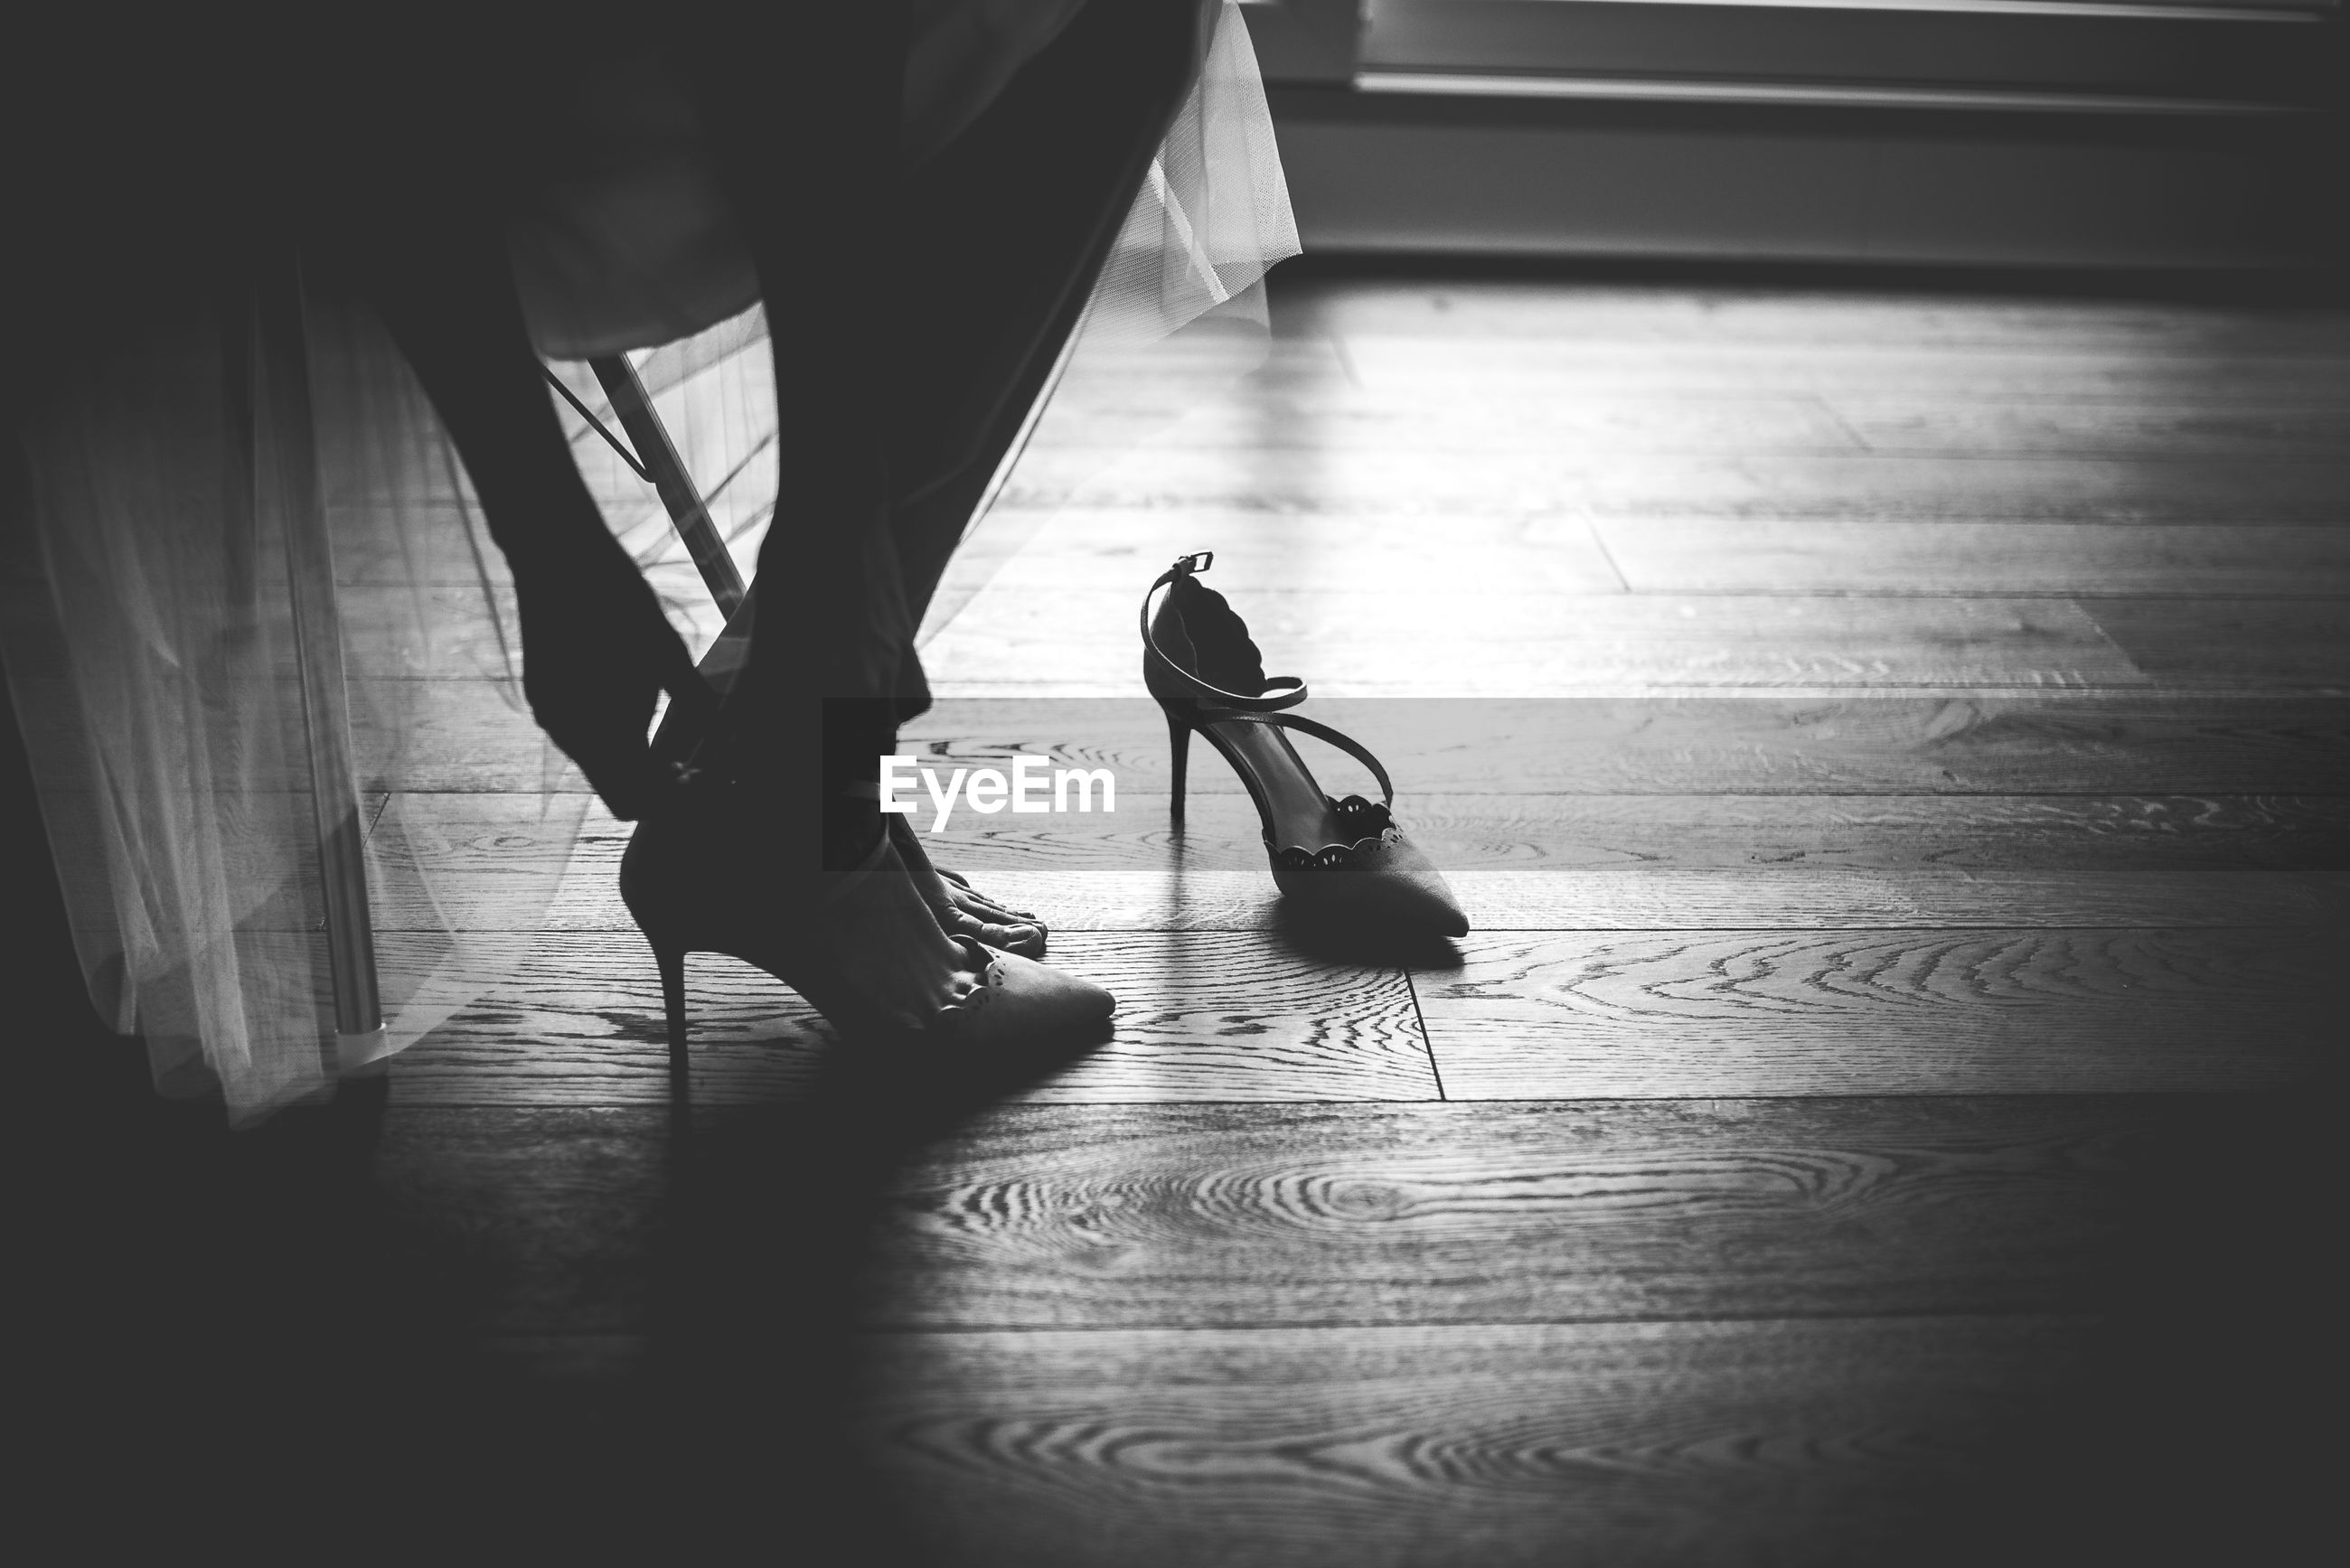 Low section of mid adult woman wearing sandals on hardwood floor